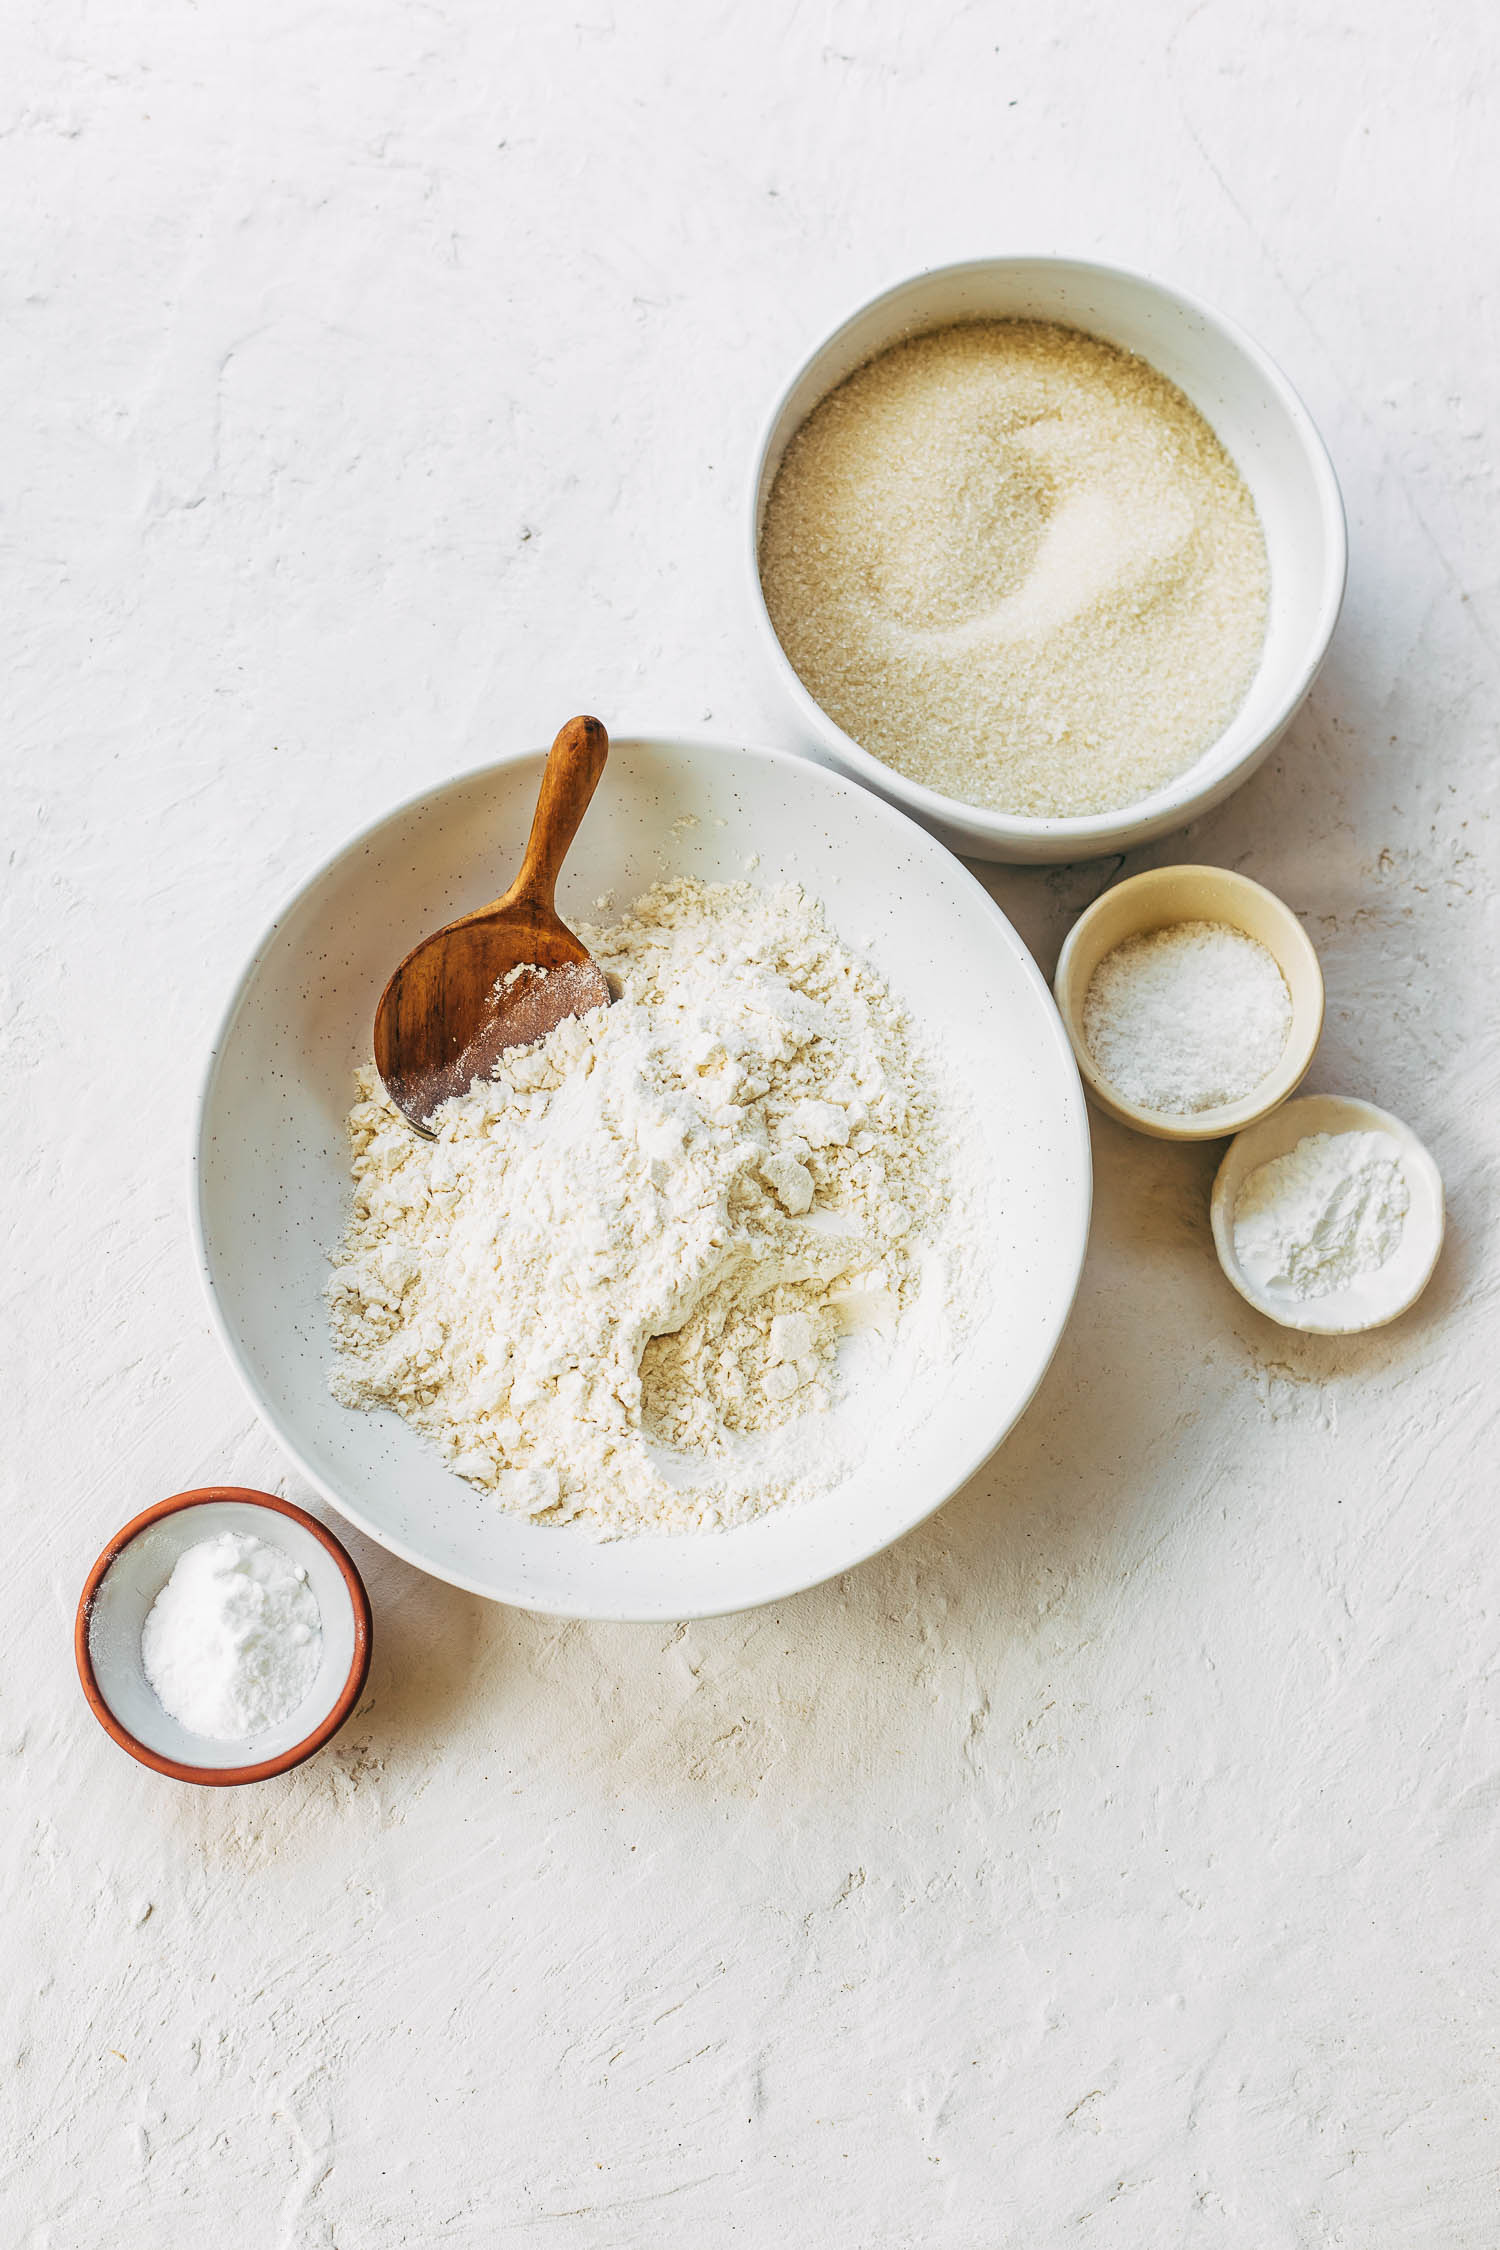 Ingredients for a vegan vanilla cake in a several bowls.